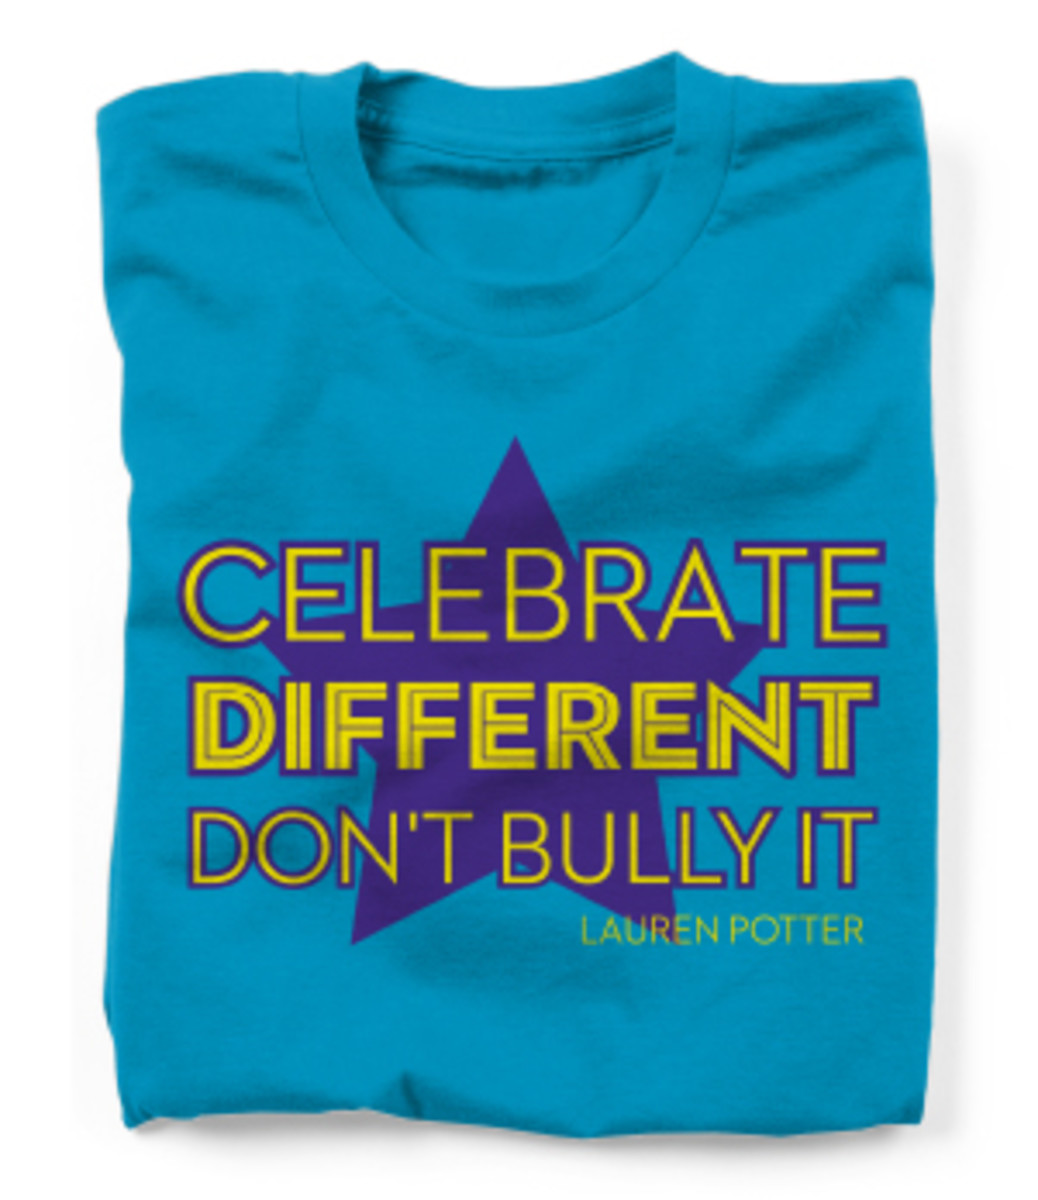 Bullying Prevention Campaign with Custom T-shirts